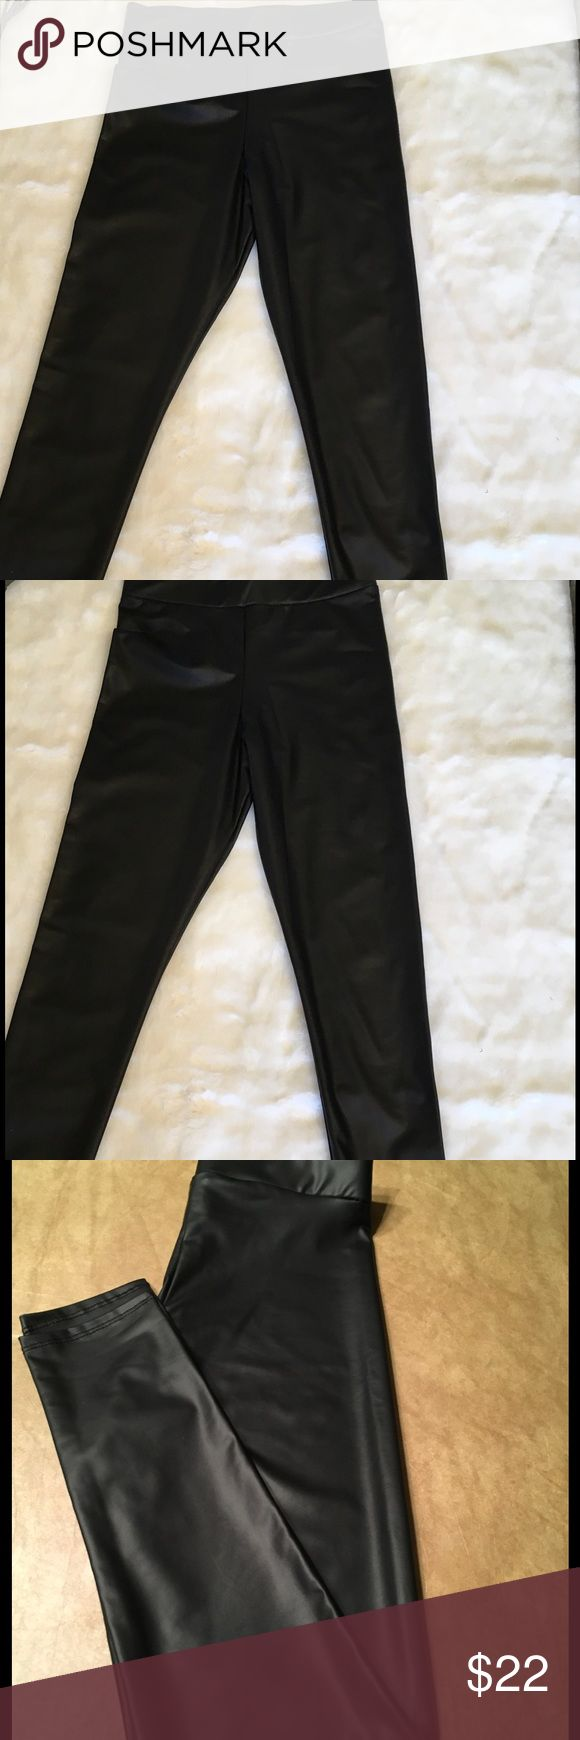 😜Classy Yet Sexy Faux Leather Leggings😜 😜These beautiful Faux Leather Leggings are perfect for dressing up or down. Made of 95% polyester and 5% Spandex. Extremely comfortable and looks classy with a lot of sexy.😜 Fashionomics Pants Leggings